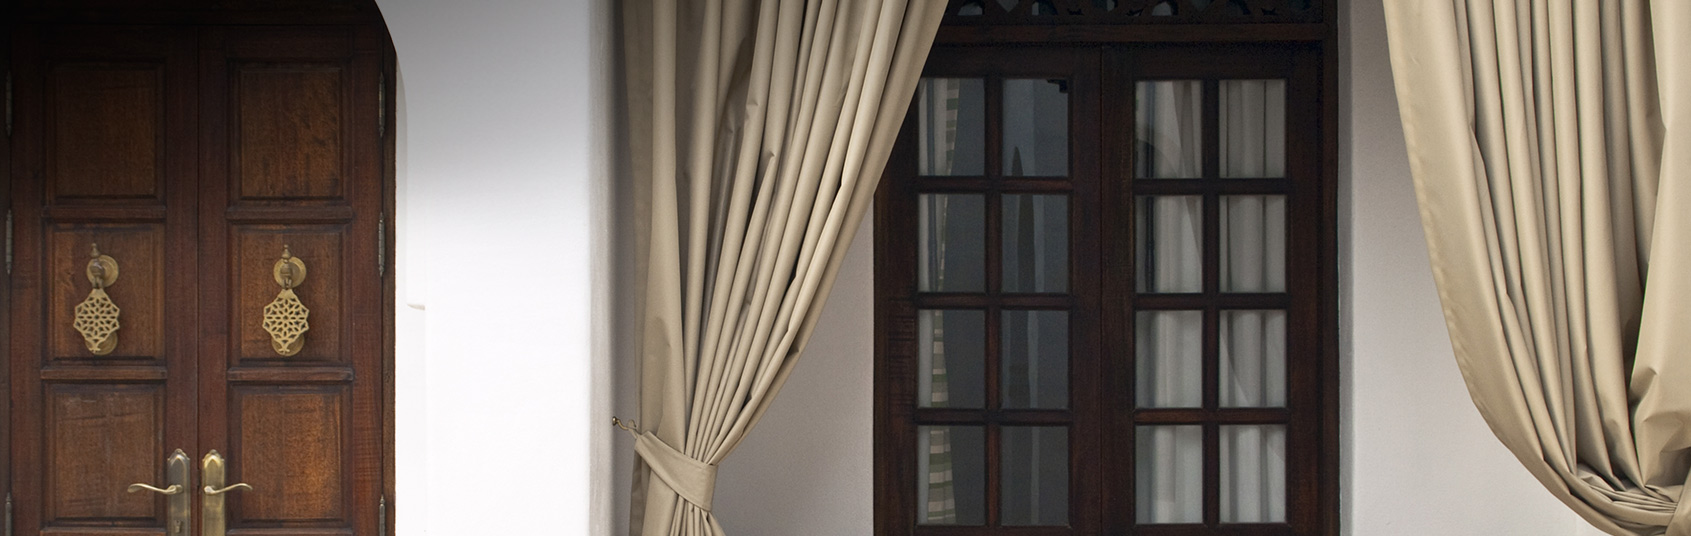 deck glass drapes patio curtains curtain door over panels fantastic sliding rods hanging inexpensive